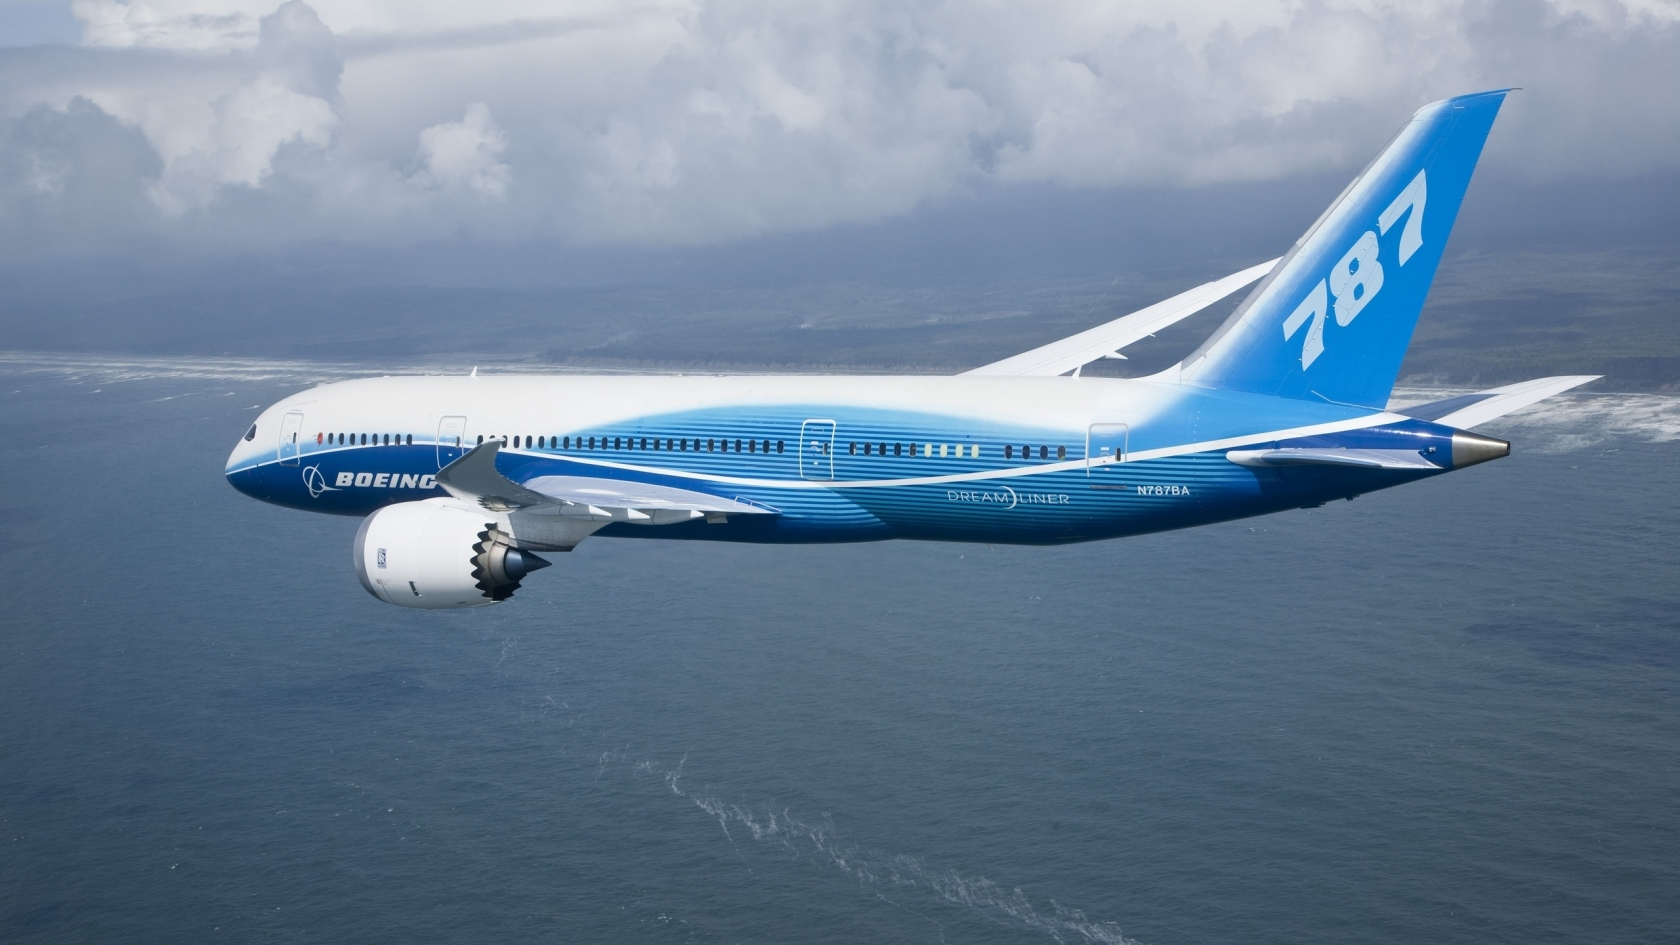 Boeing 787 Flying for 1680 x 945 HDTV resolution